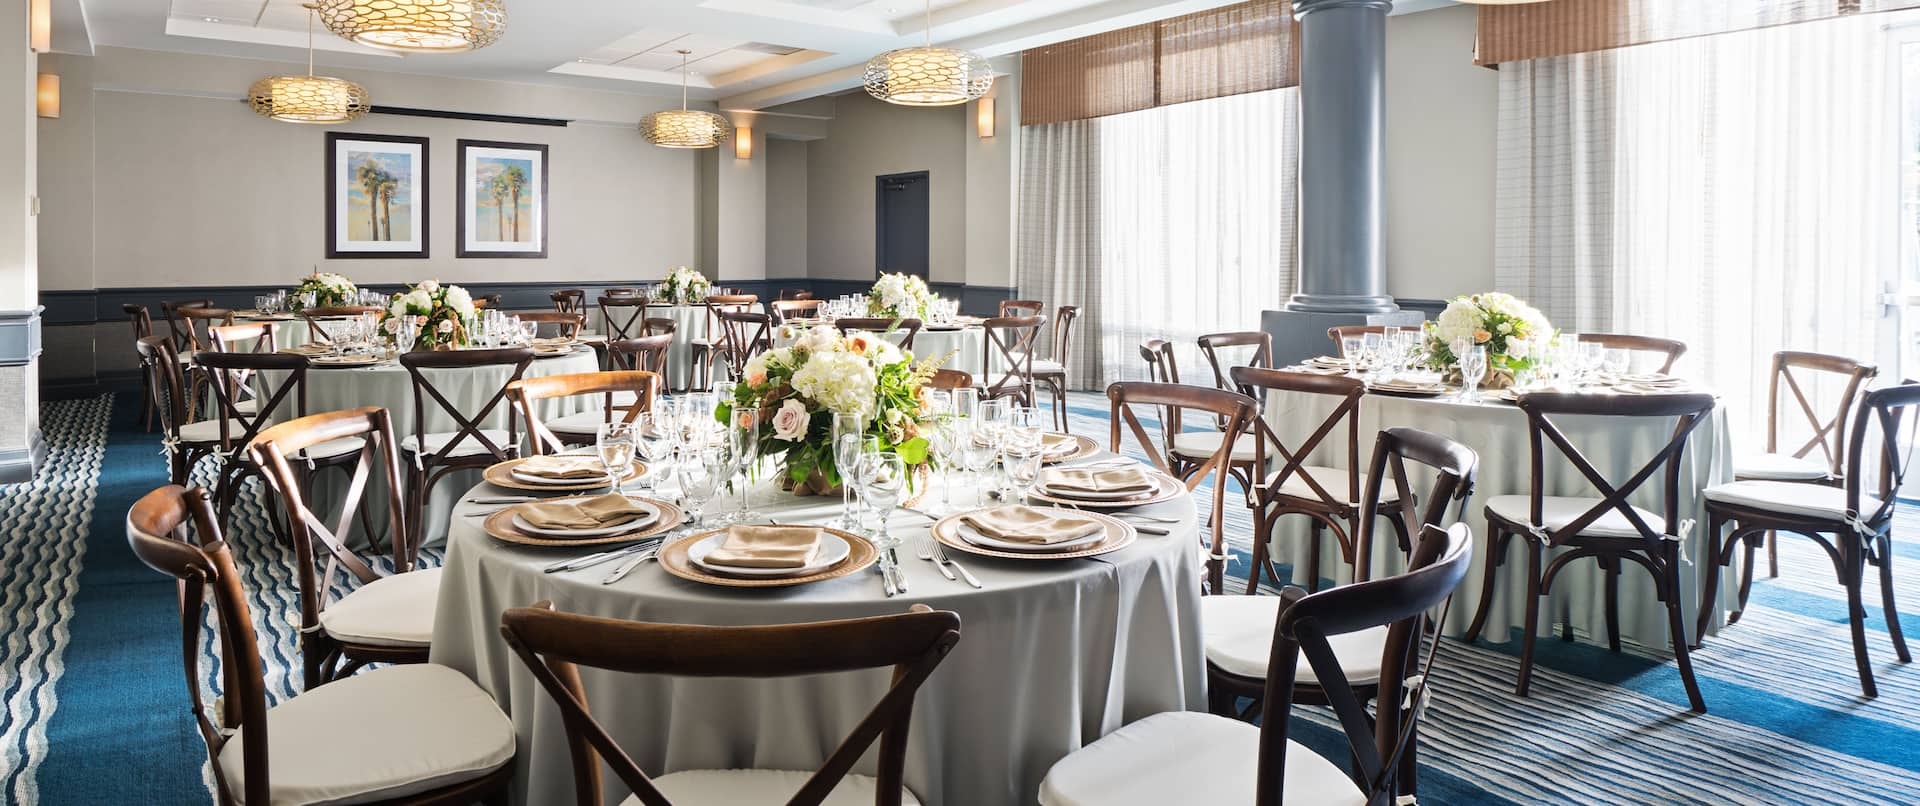 Meeting Room with Decorated Round Banquet Tables